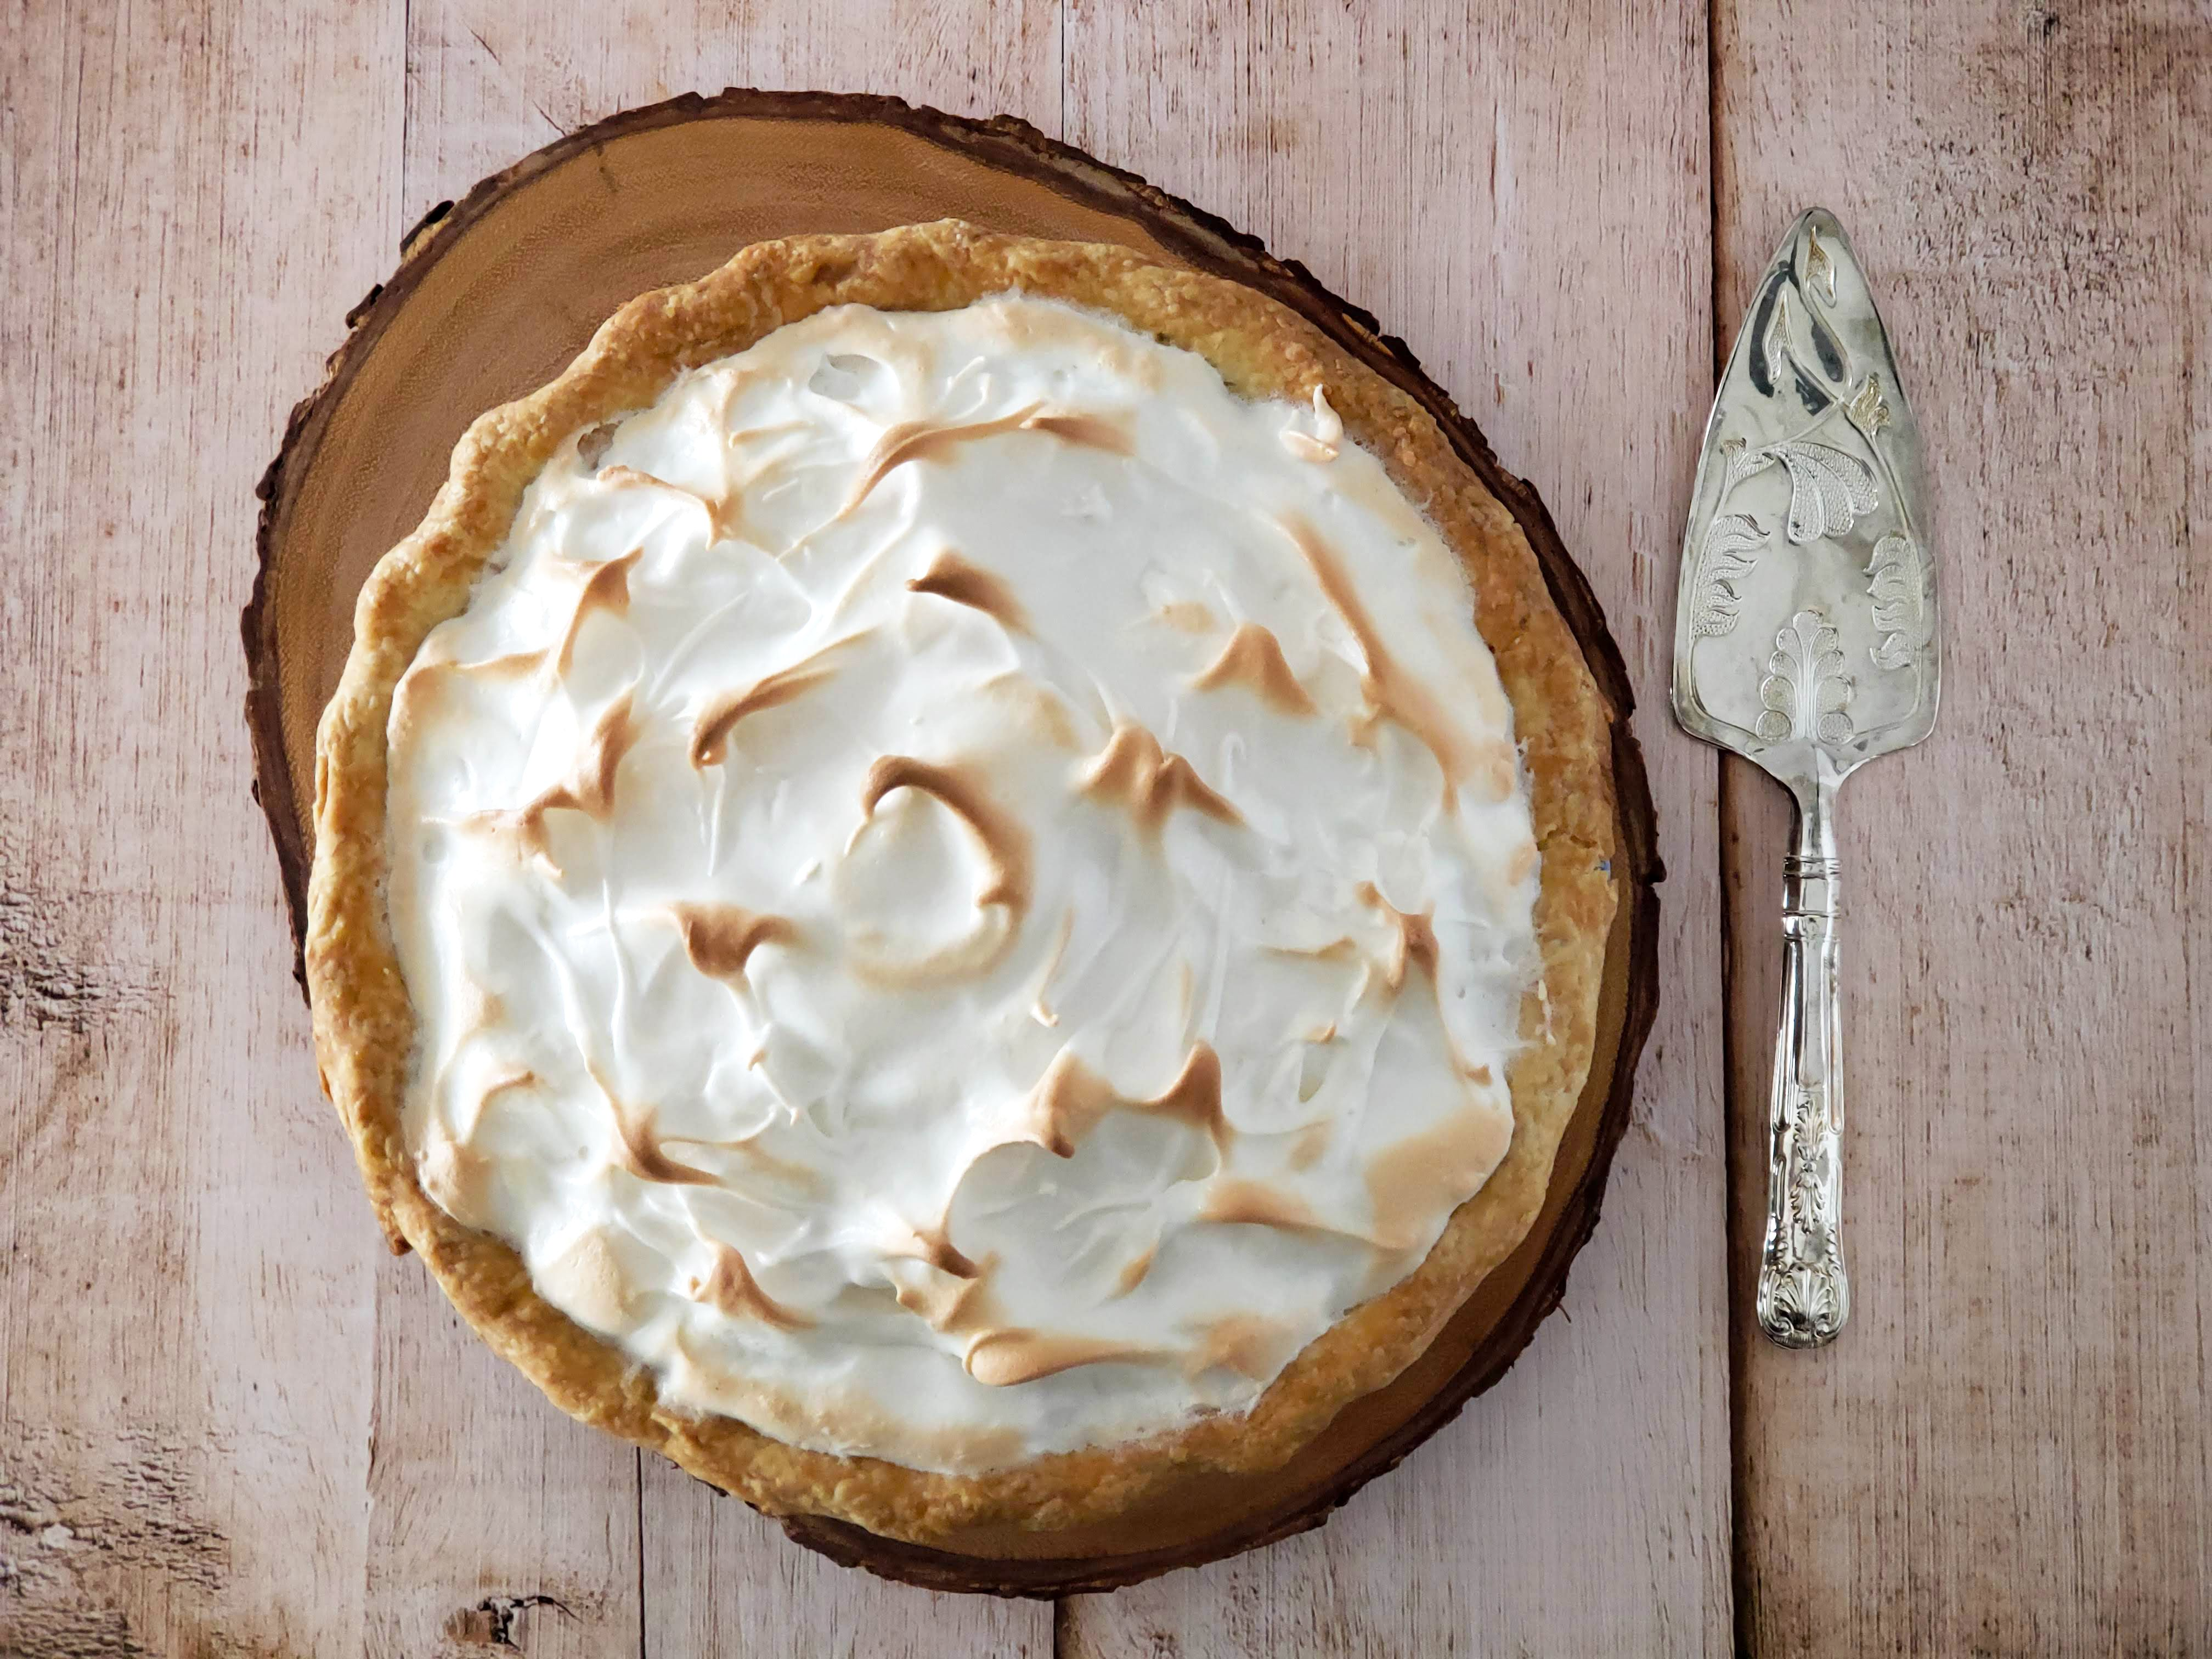 Caramel pie with meringue topping.